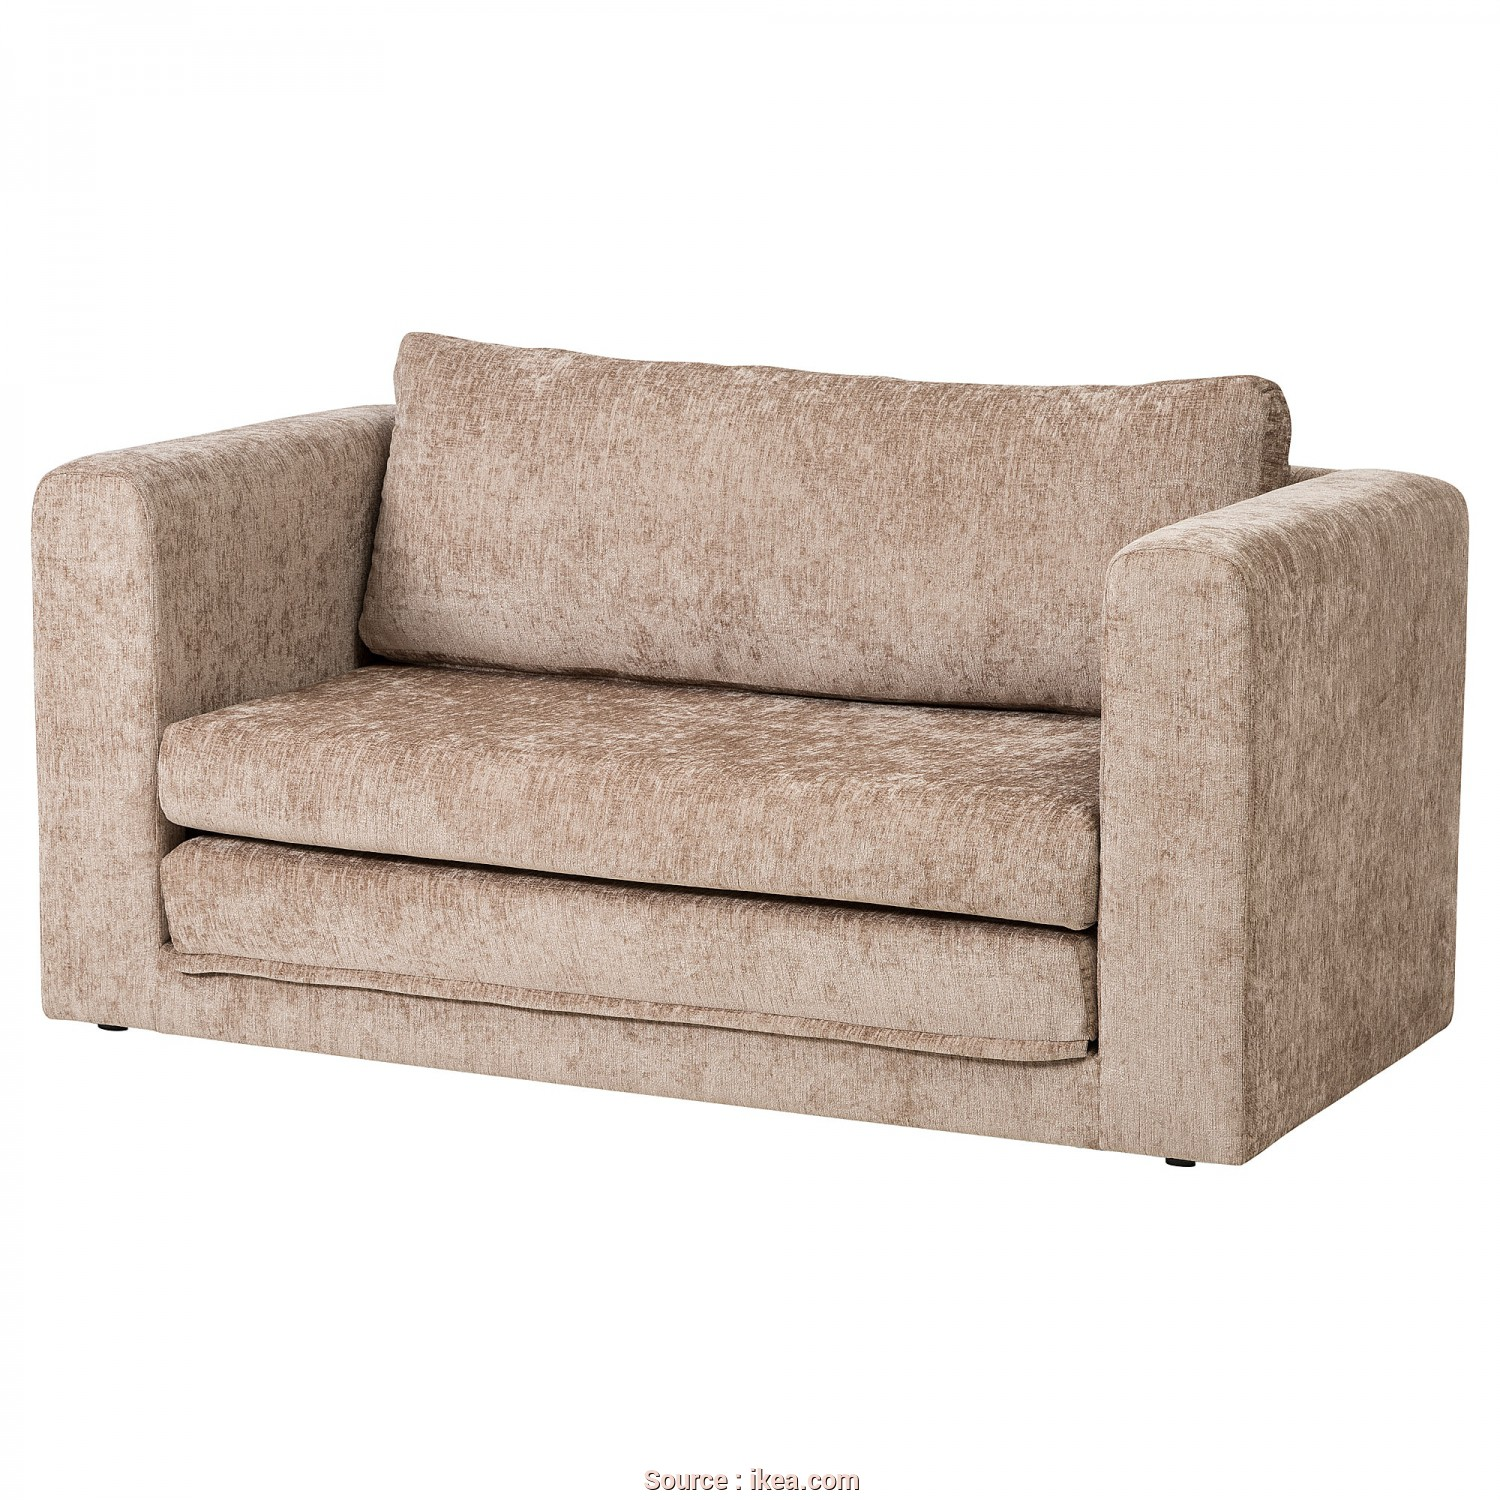 Ikea Vilasund 2Er, Eccezionale IKEA ASKEBY 2-Seat Sofa-Bed Readily Converts Into A Bed